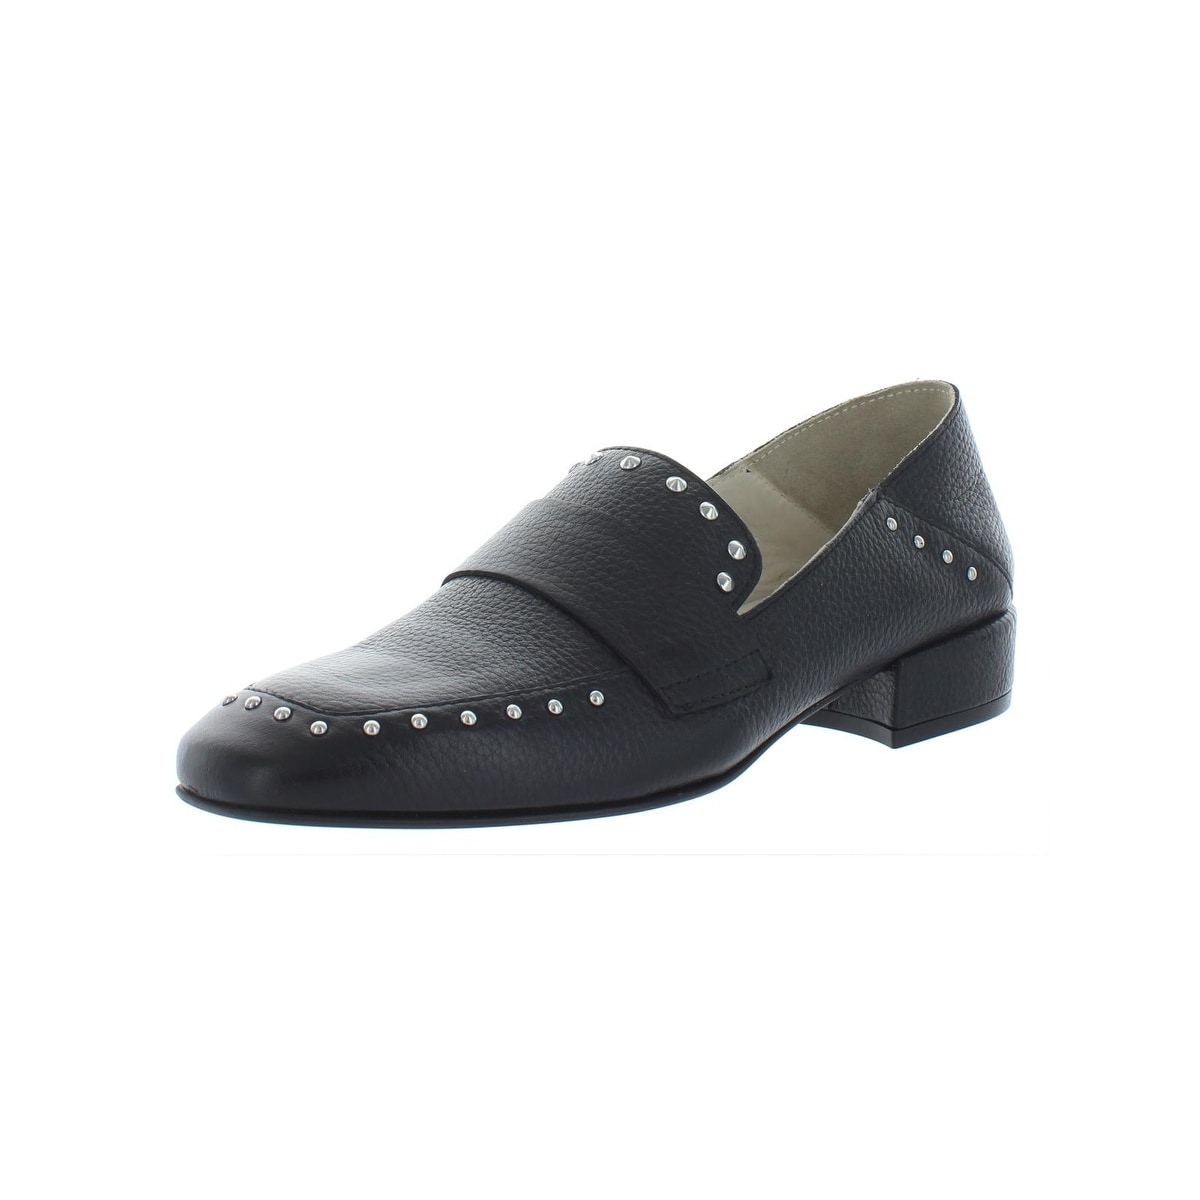 a51d4729314 Buy Kenneth Cole New York Women s Loafers Online at Overstock